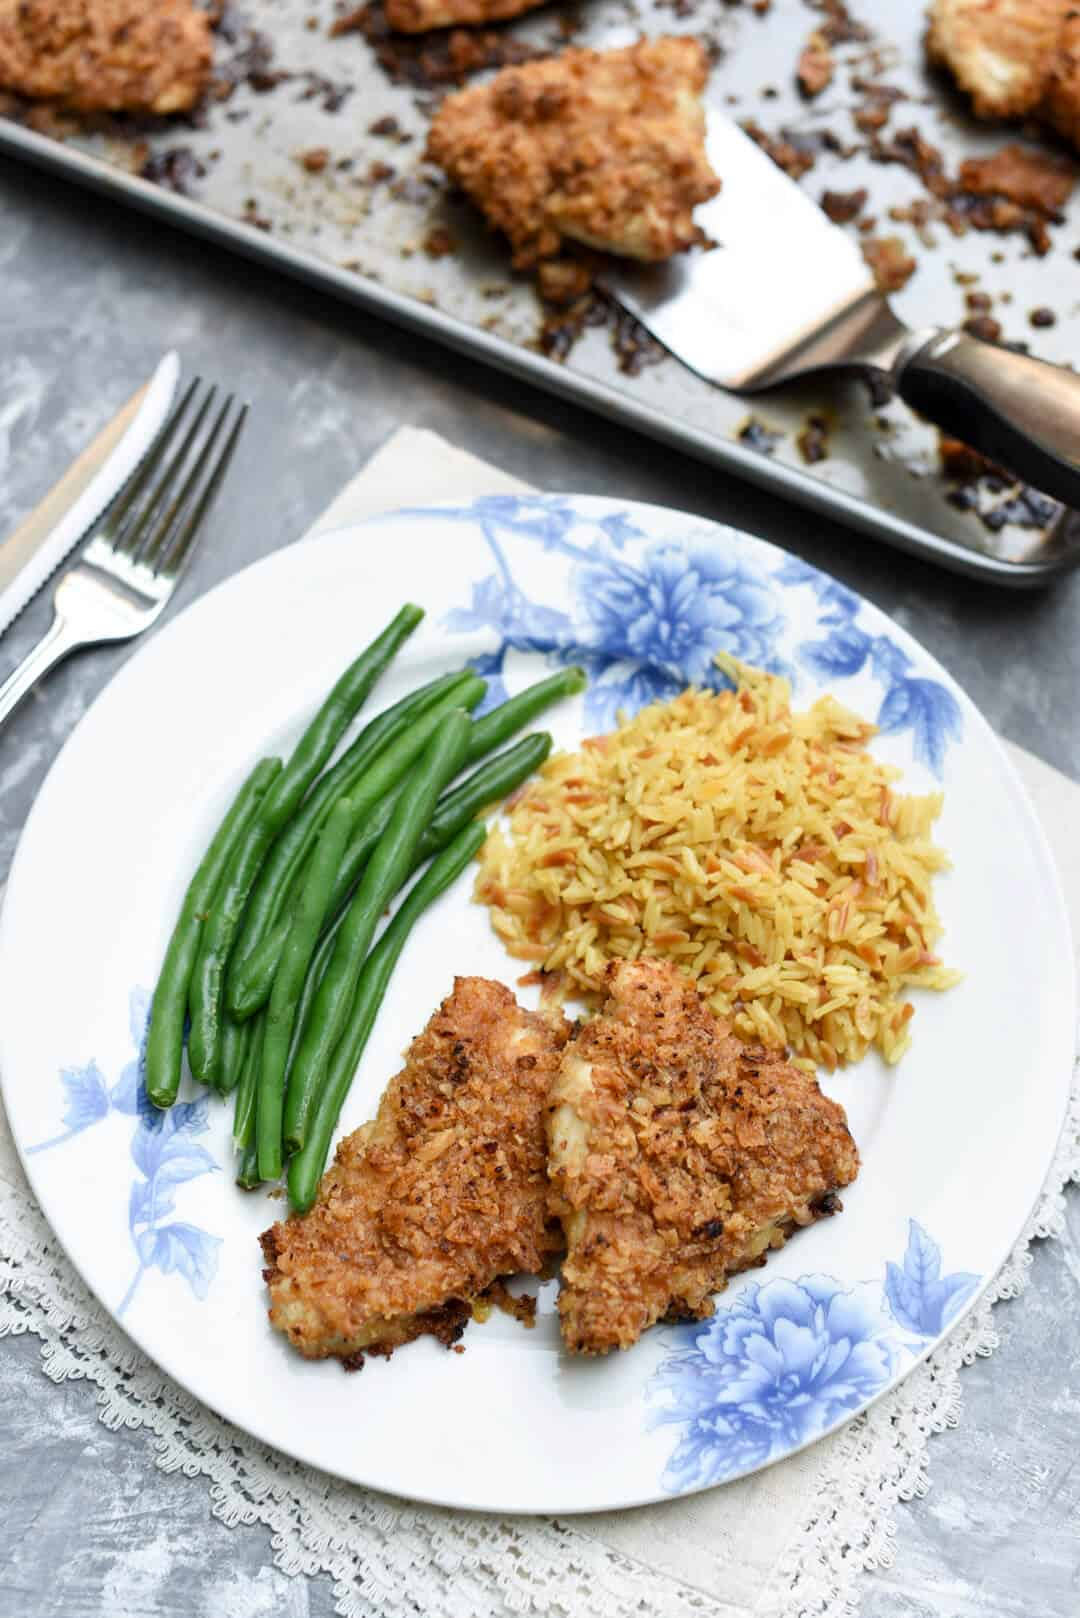 This Crispy Onion Chicken is golden brown and crispy on the outside and super tender on the inside. A delicious, family-friendly meal!